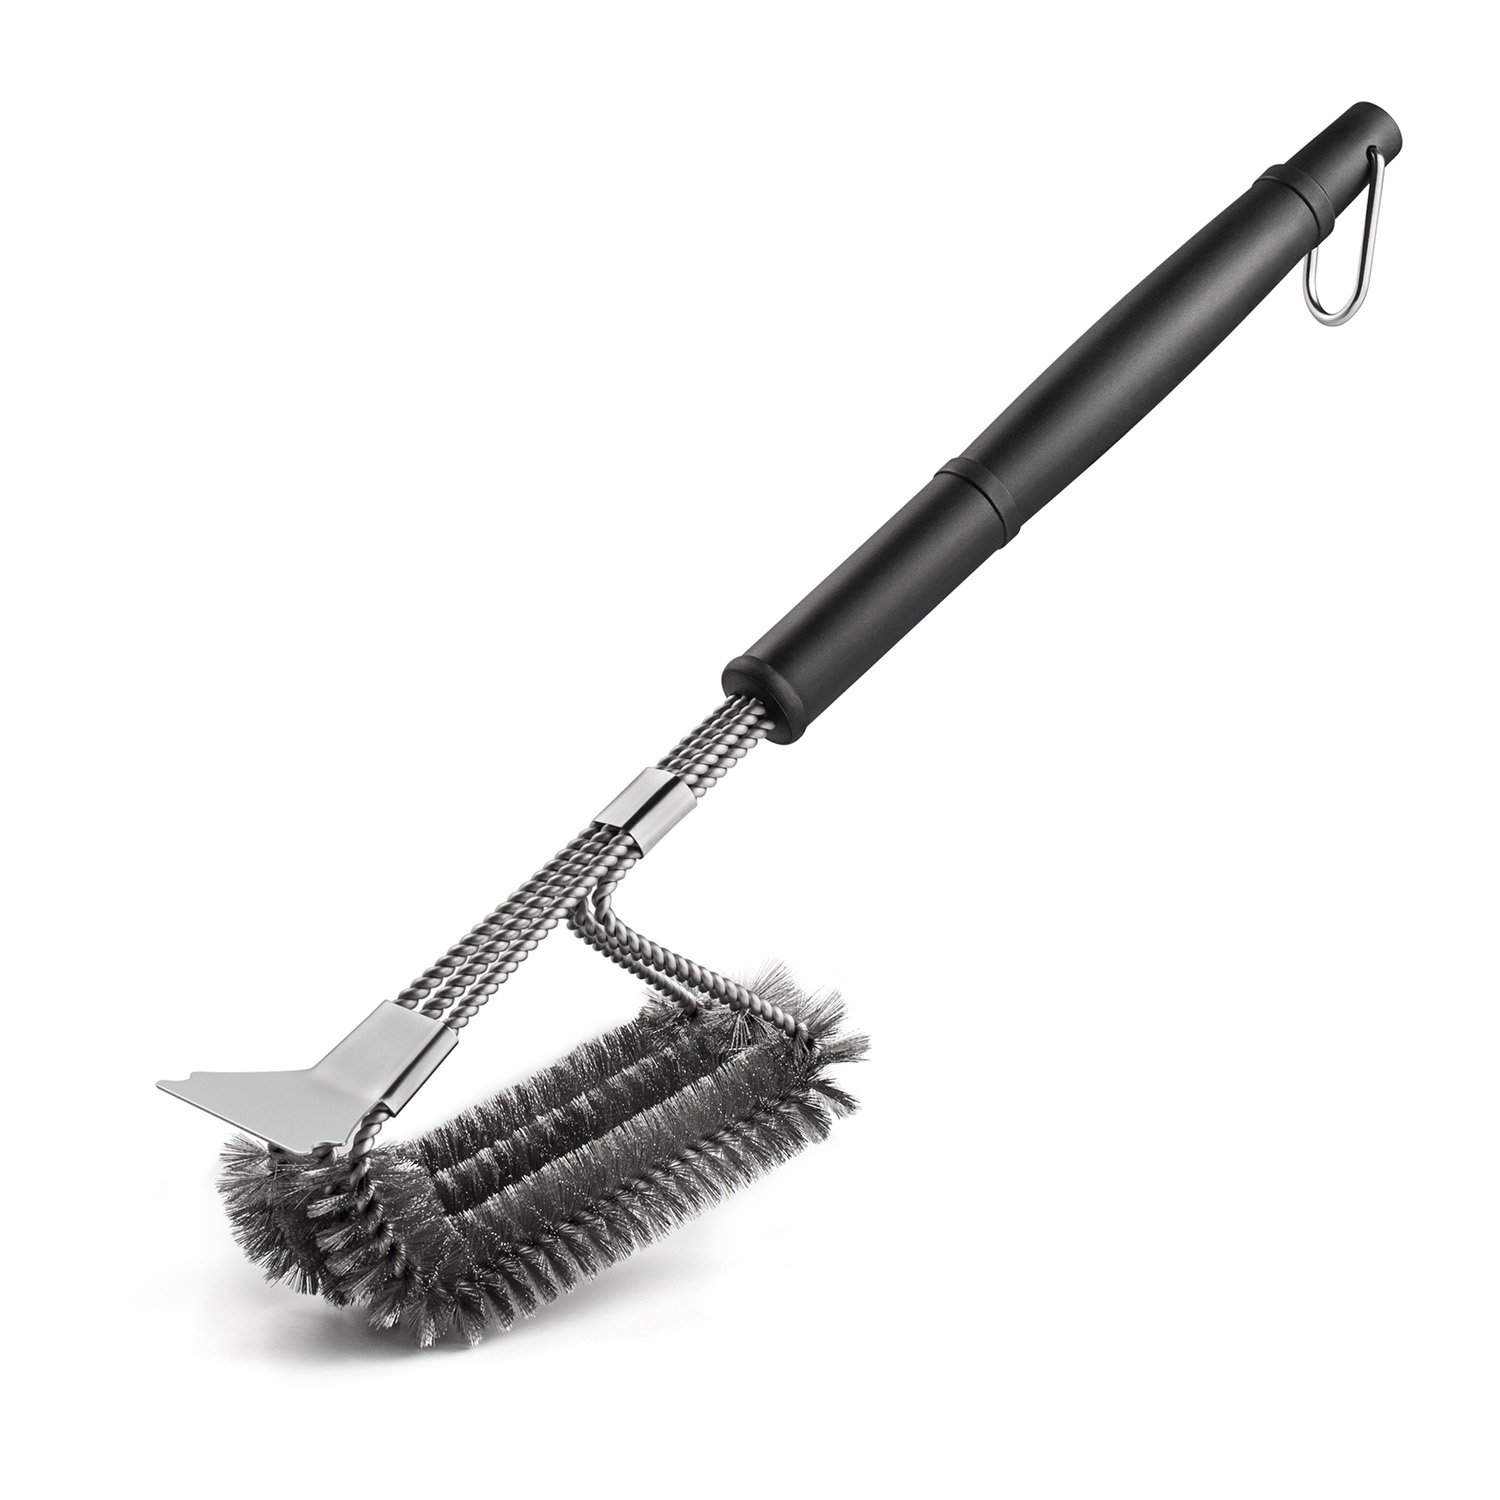 Deppon 18'' 3 in 1 Stainless Steel Triple Head BBQ Grill Cleaning Brush Scraper with Long Handle